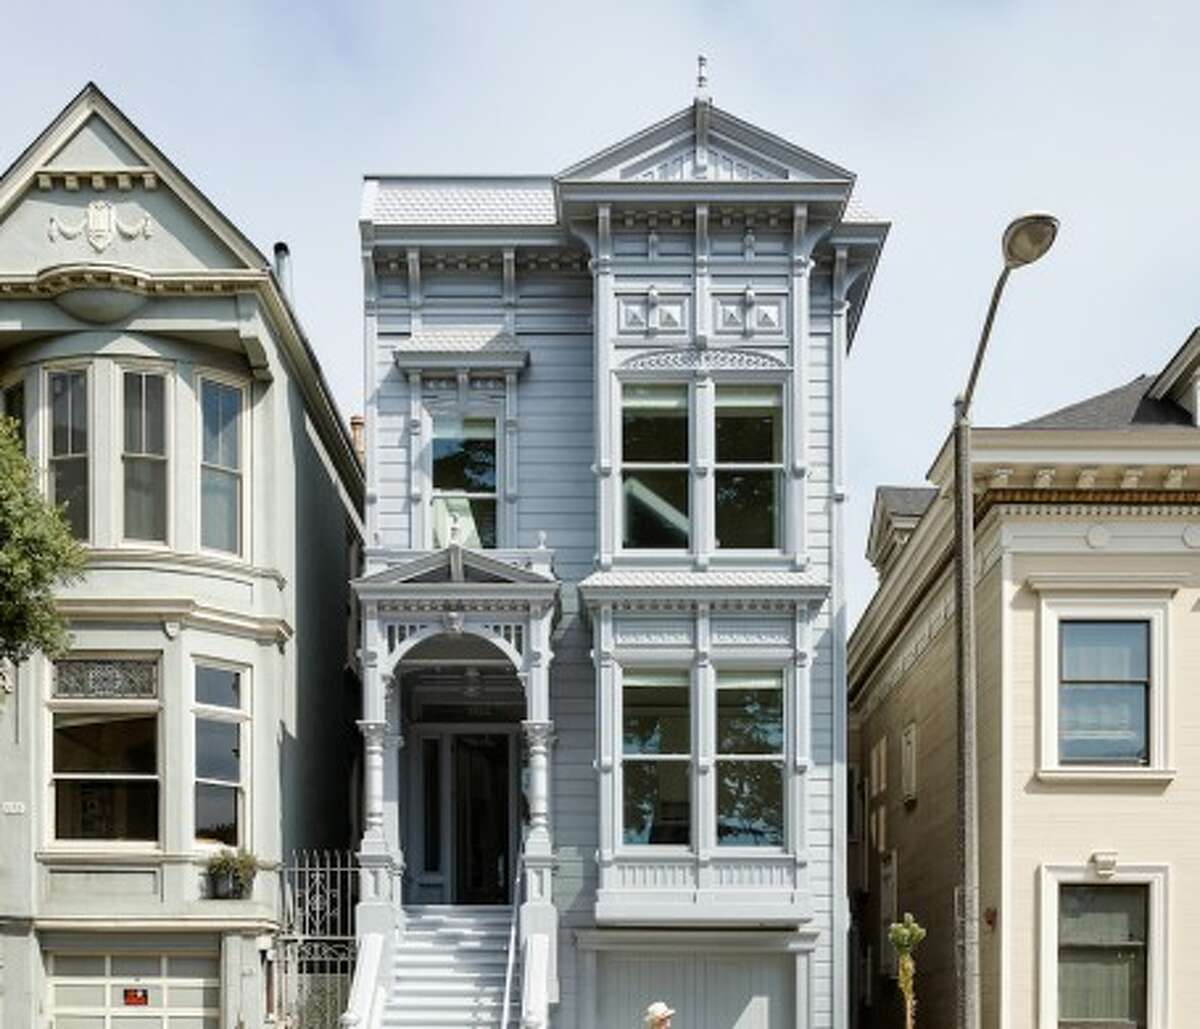 A look inside the modernized Stick-style Victorian, originally built in 1889.